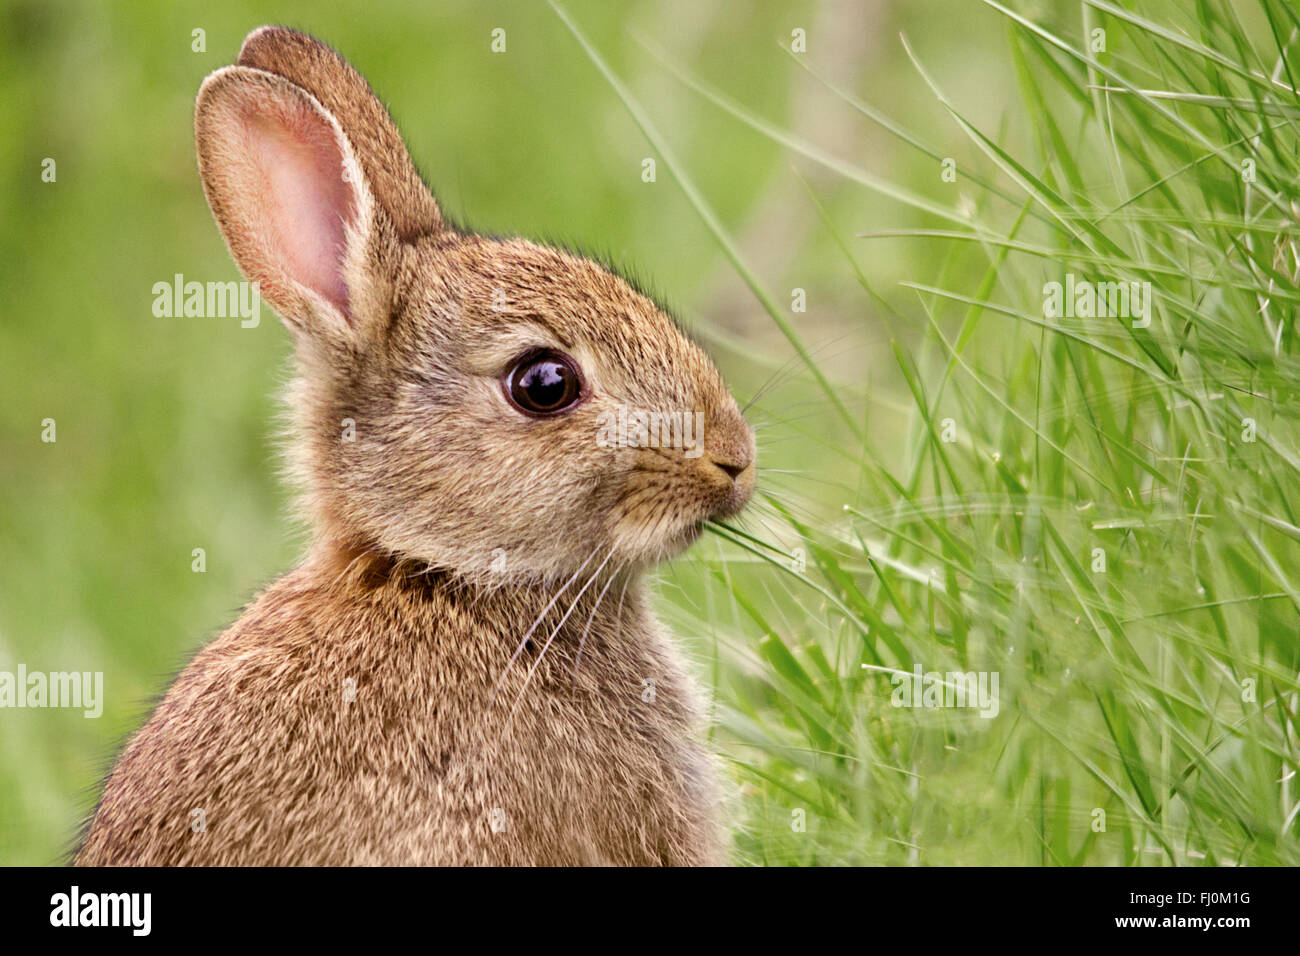 Rabbit (oryctolagus cunniculus). Head and shoulders portrait in landscape format. Bright eye, eating grass head - Stock Image